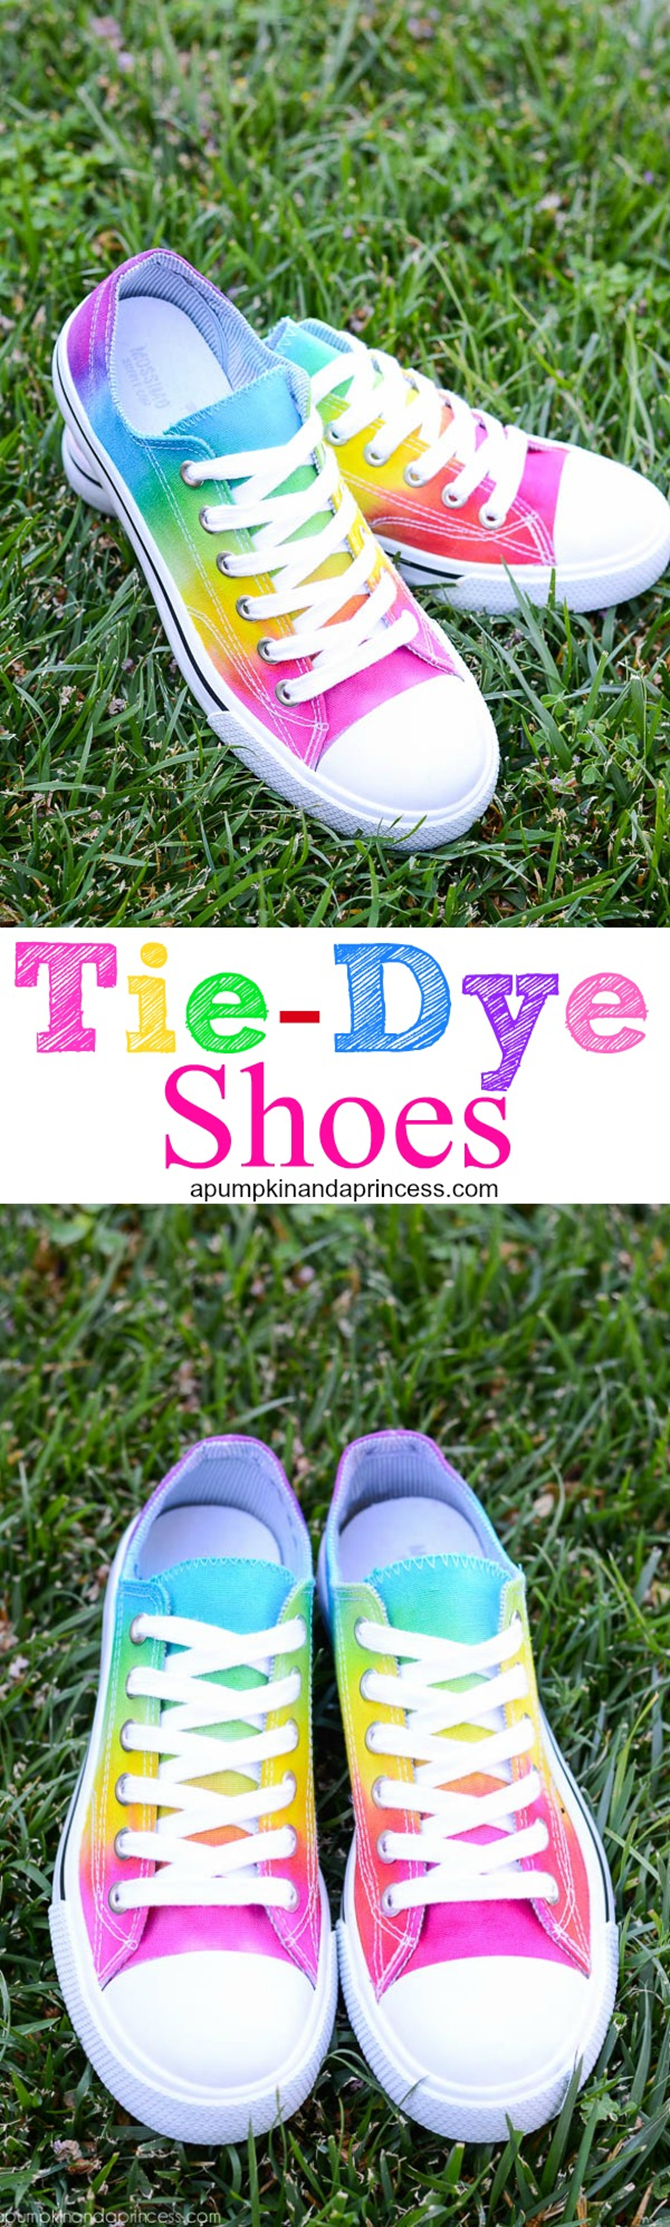 DIY Tennis Shoes - Tie Dye - EverythingEtsy